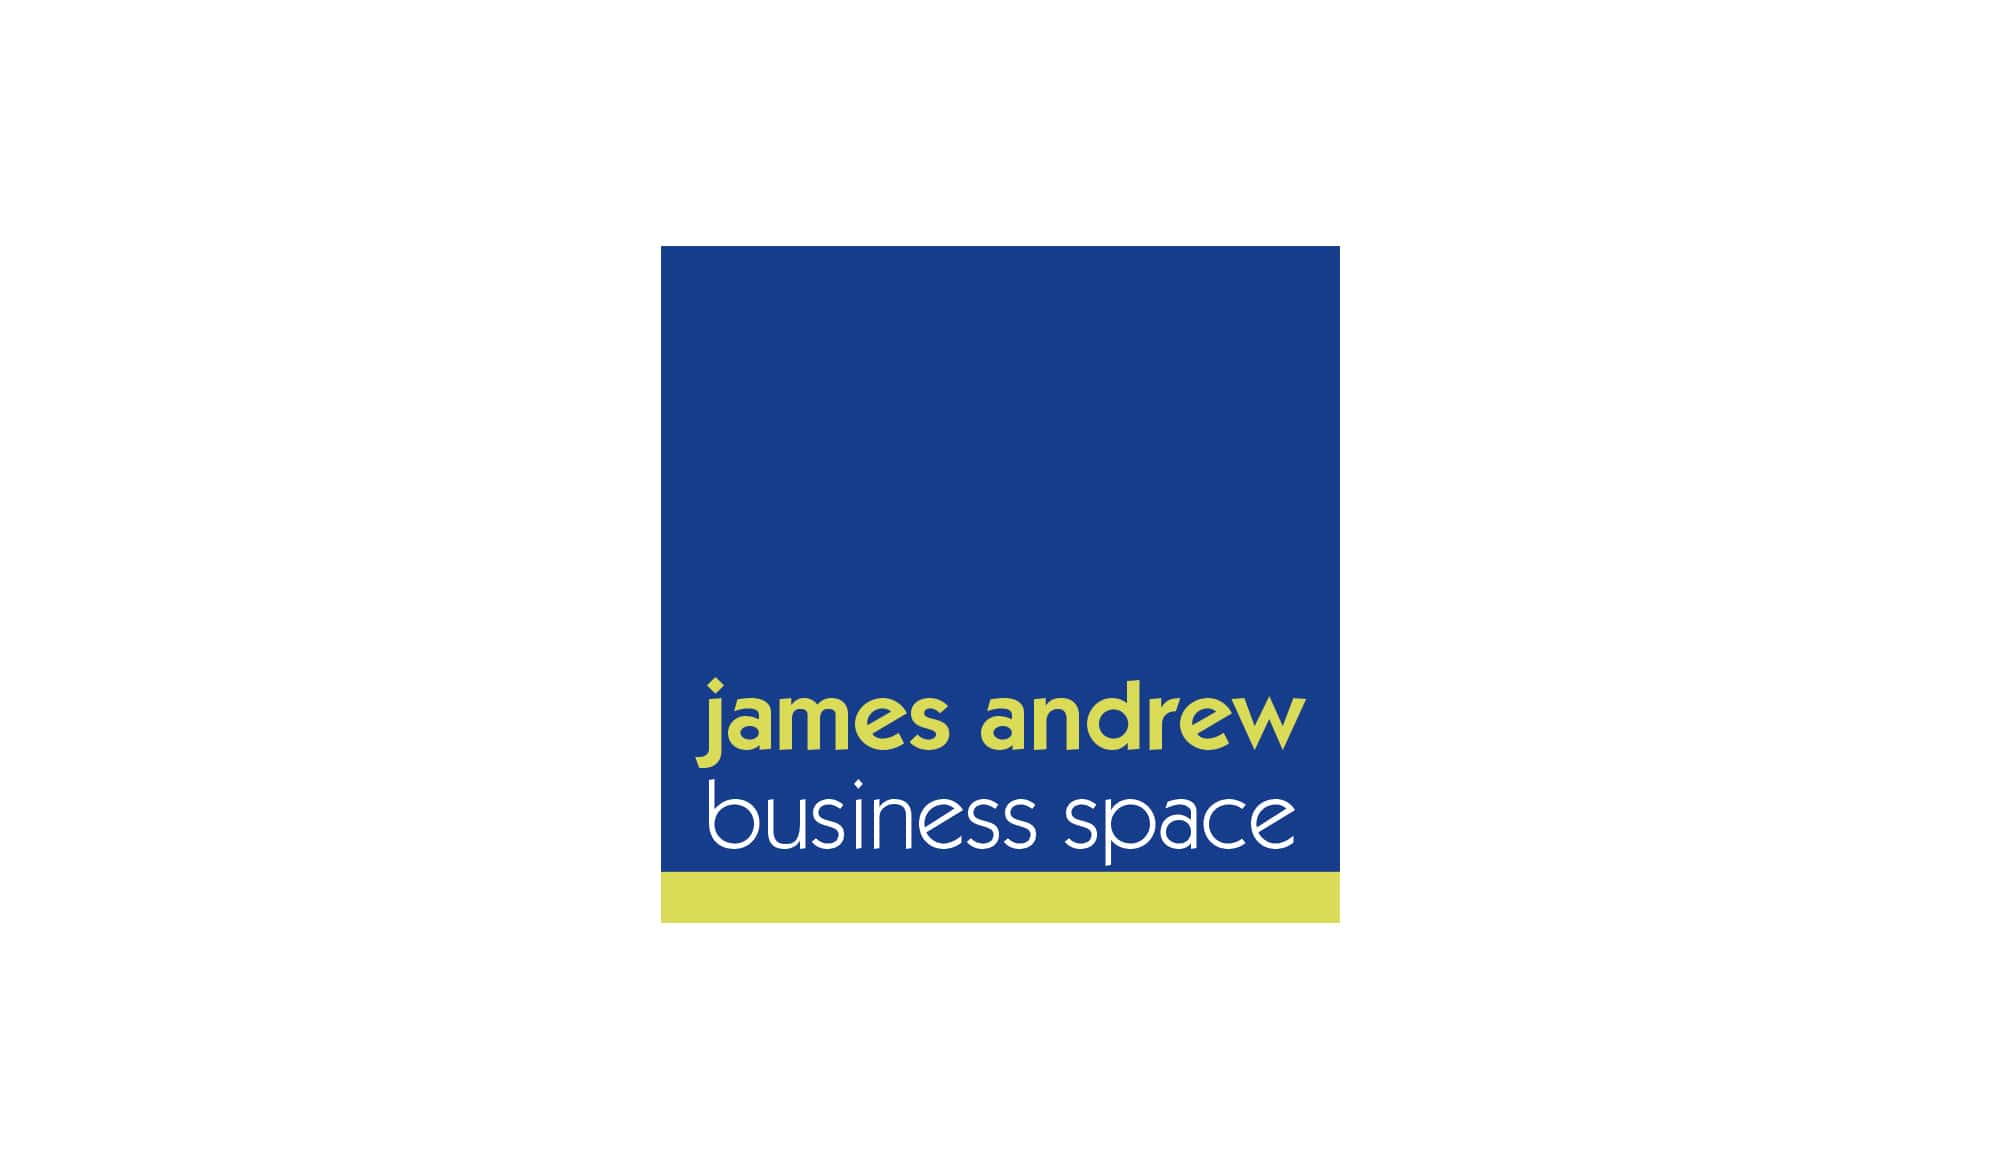 James Andrew Business Space - logo